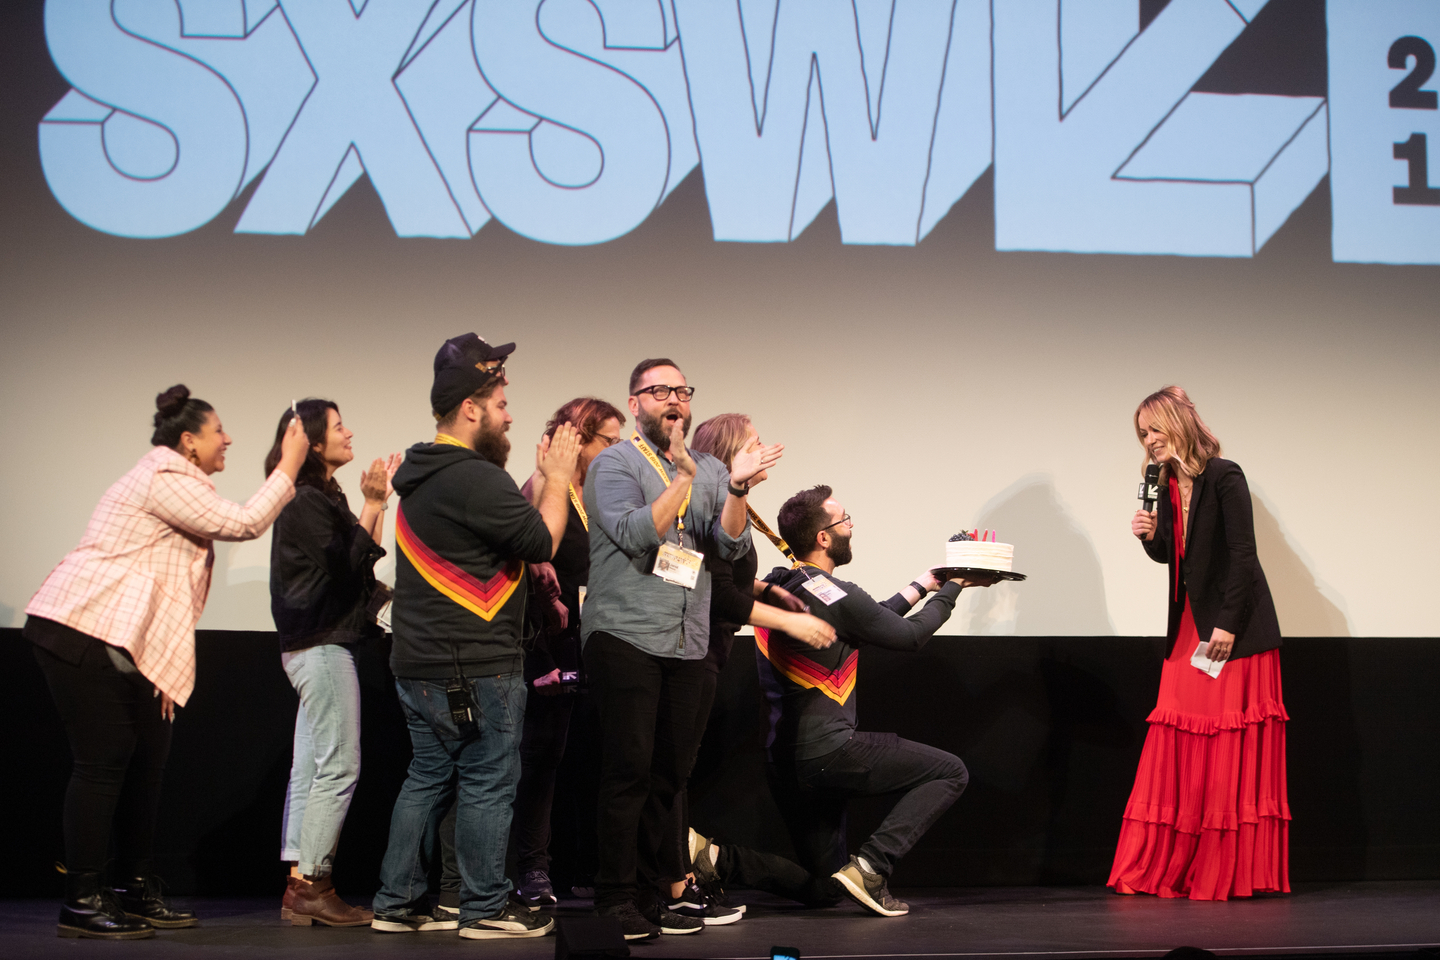 The SXSW Film Staff present Olivia Wilde with a birthday cake while she attends the Booksmart Premiere at the Paramount Theatre.